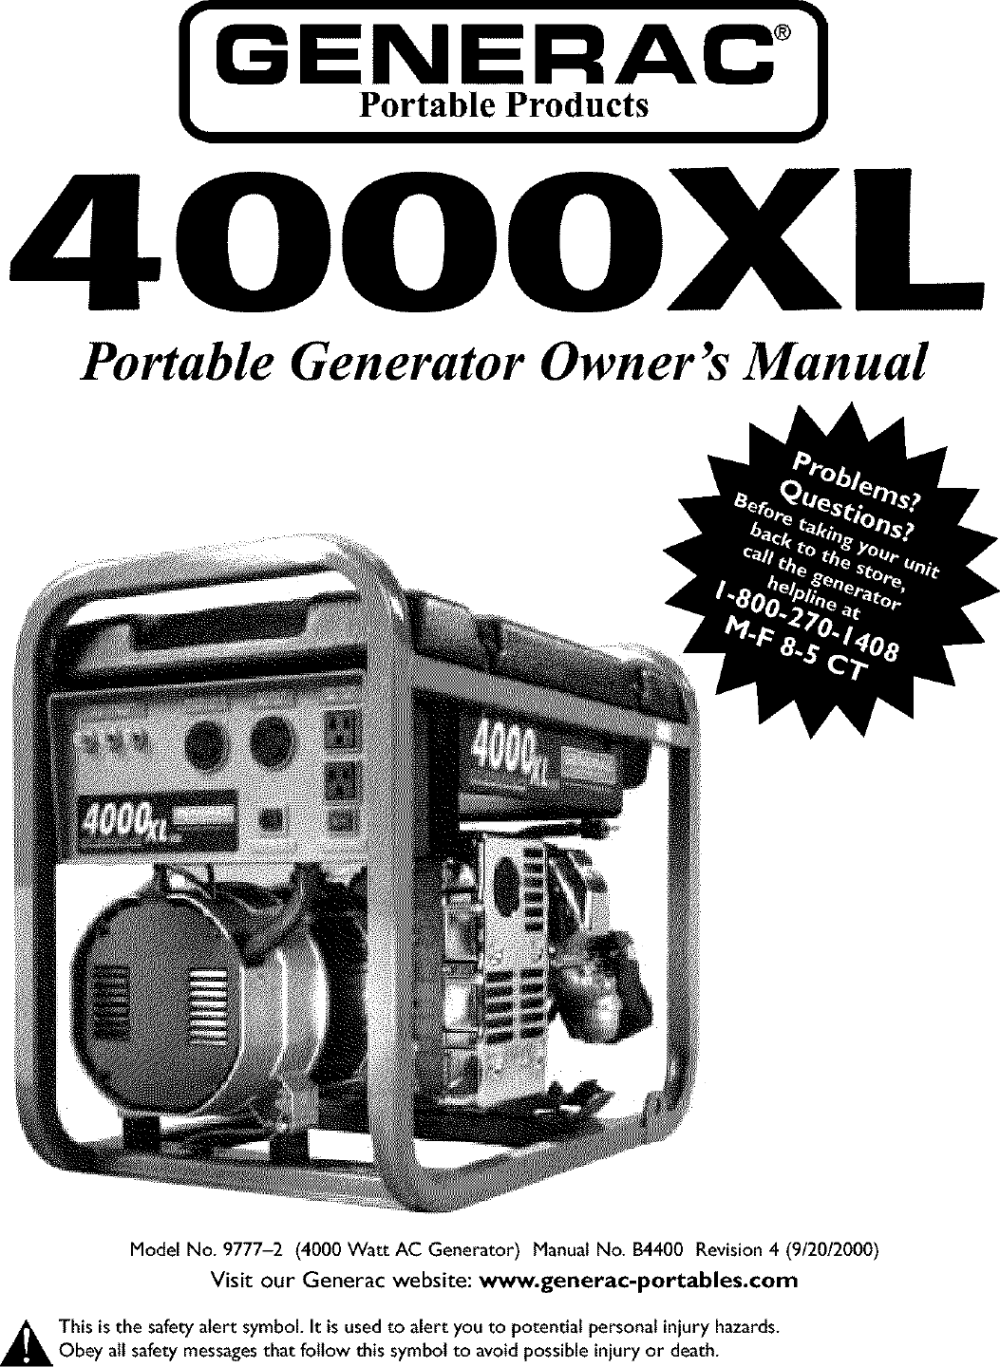 medium resolution of generac 4000xl 9777 2 owners manual manualslib makes it easy to find manuals online